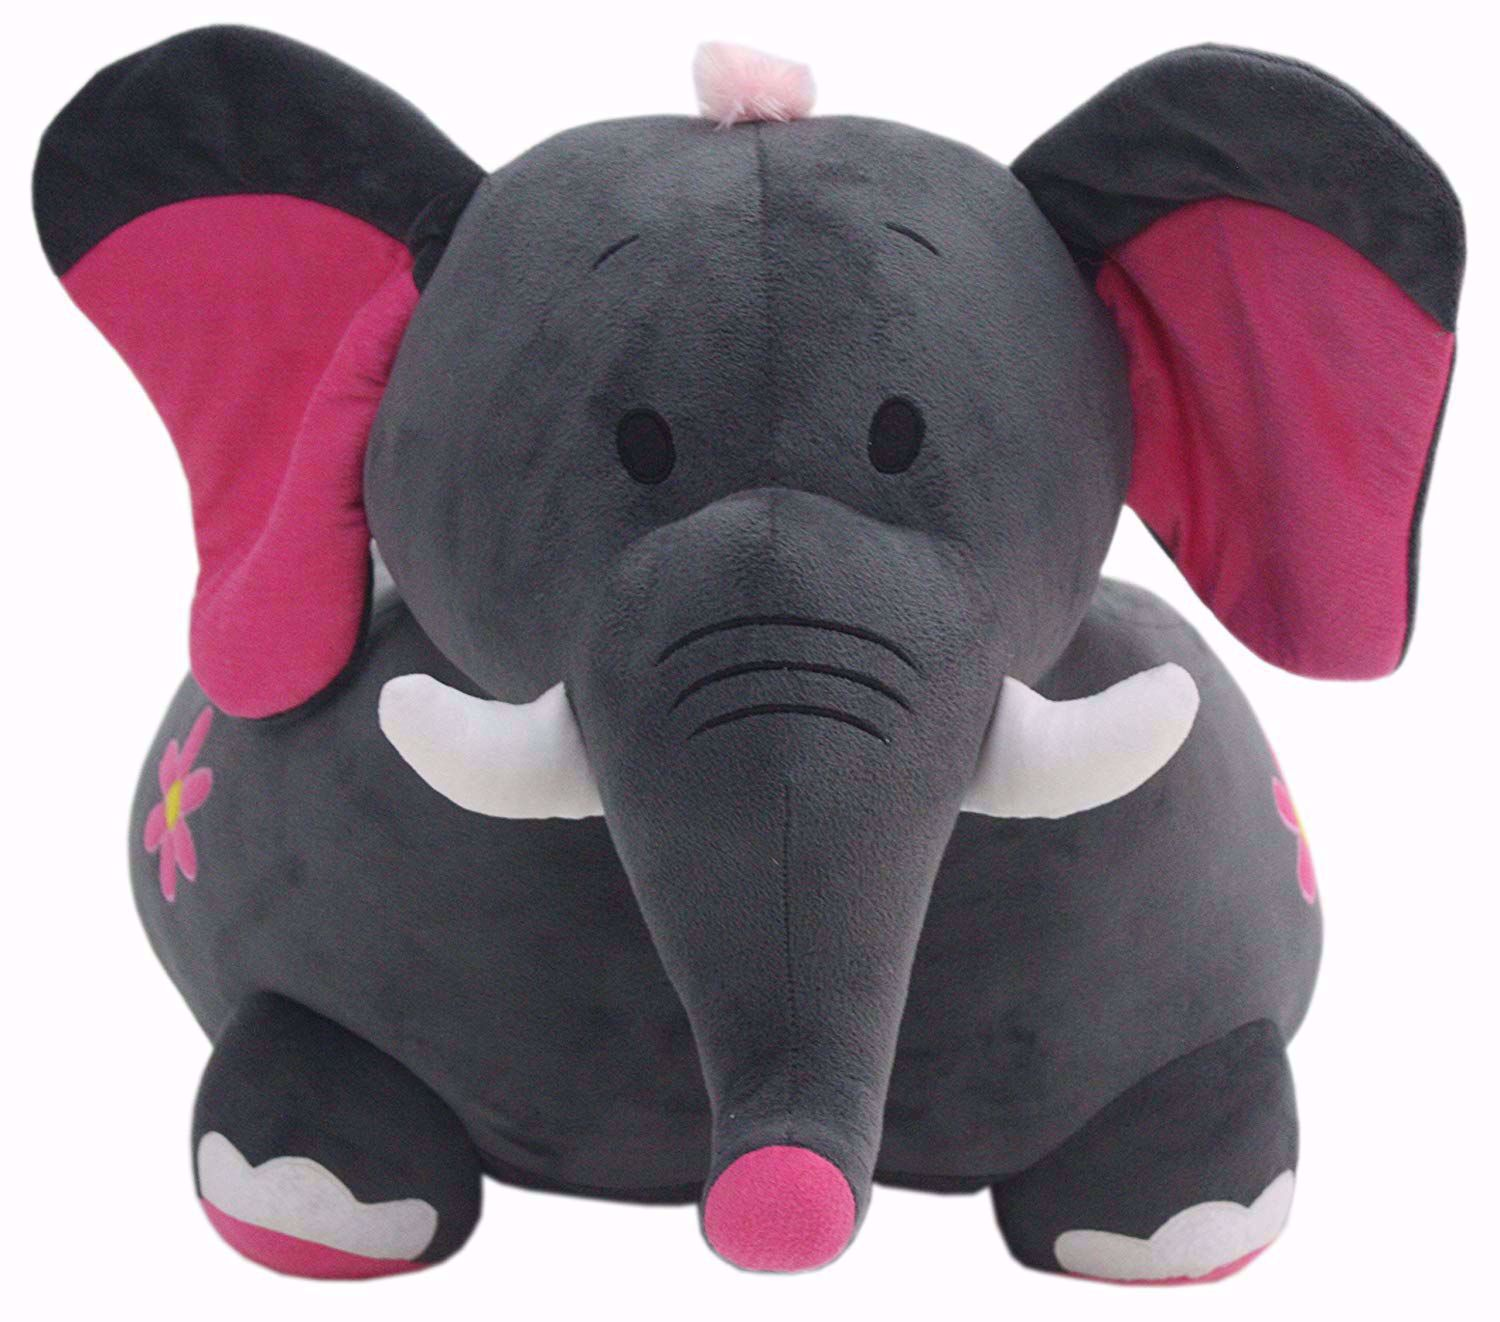 Baby Elephant Sofa Big